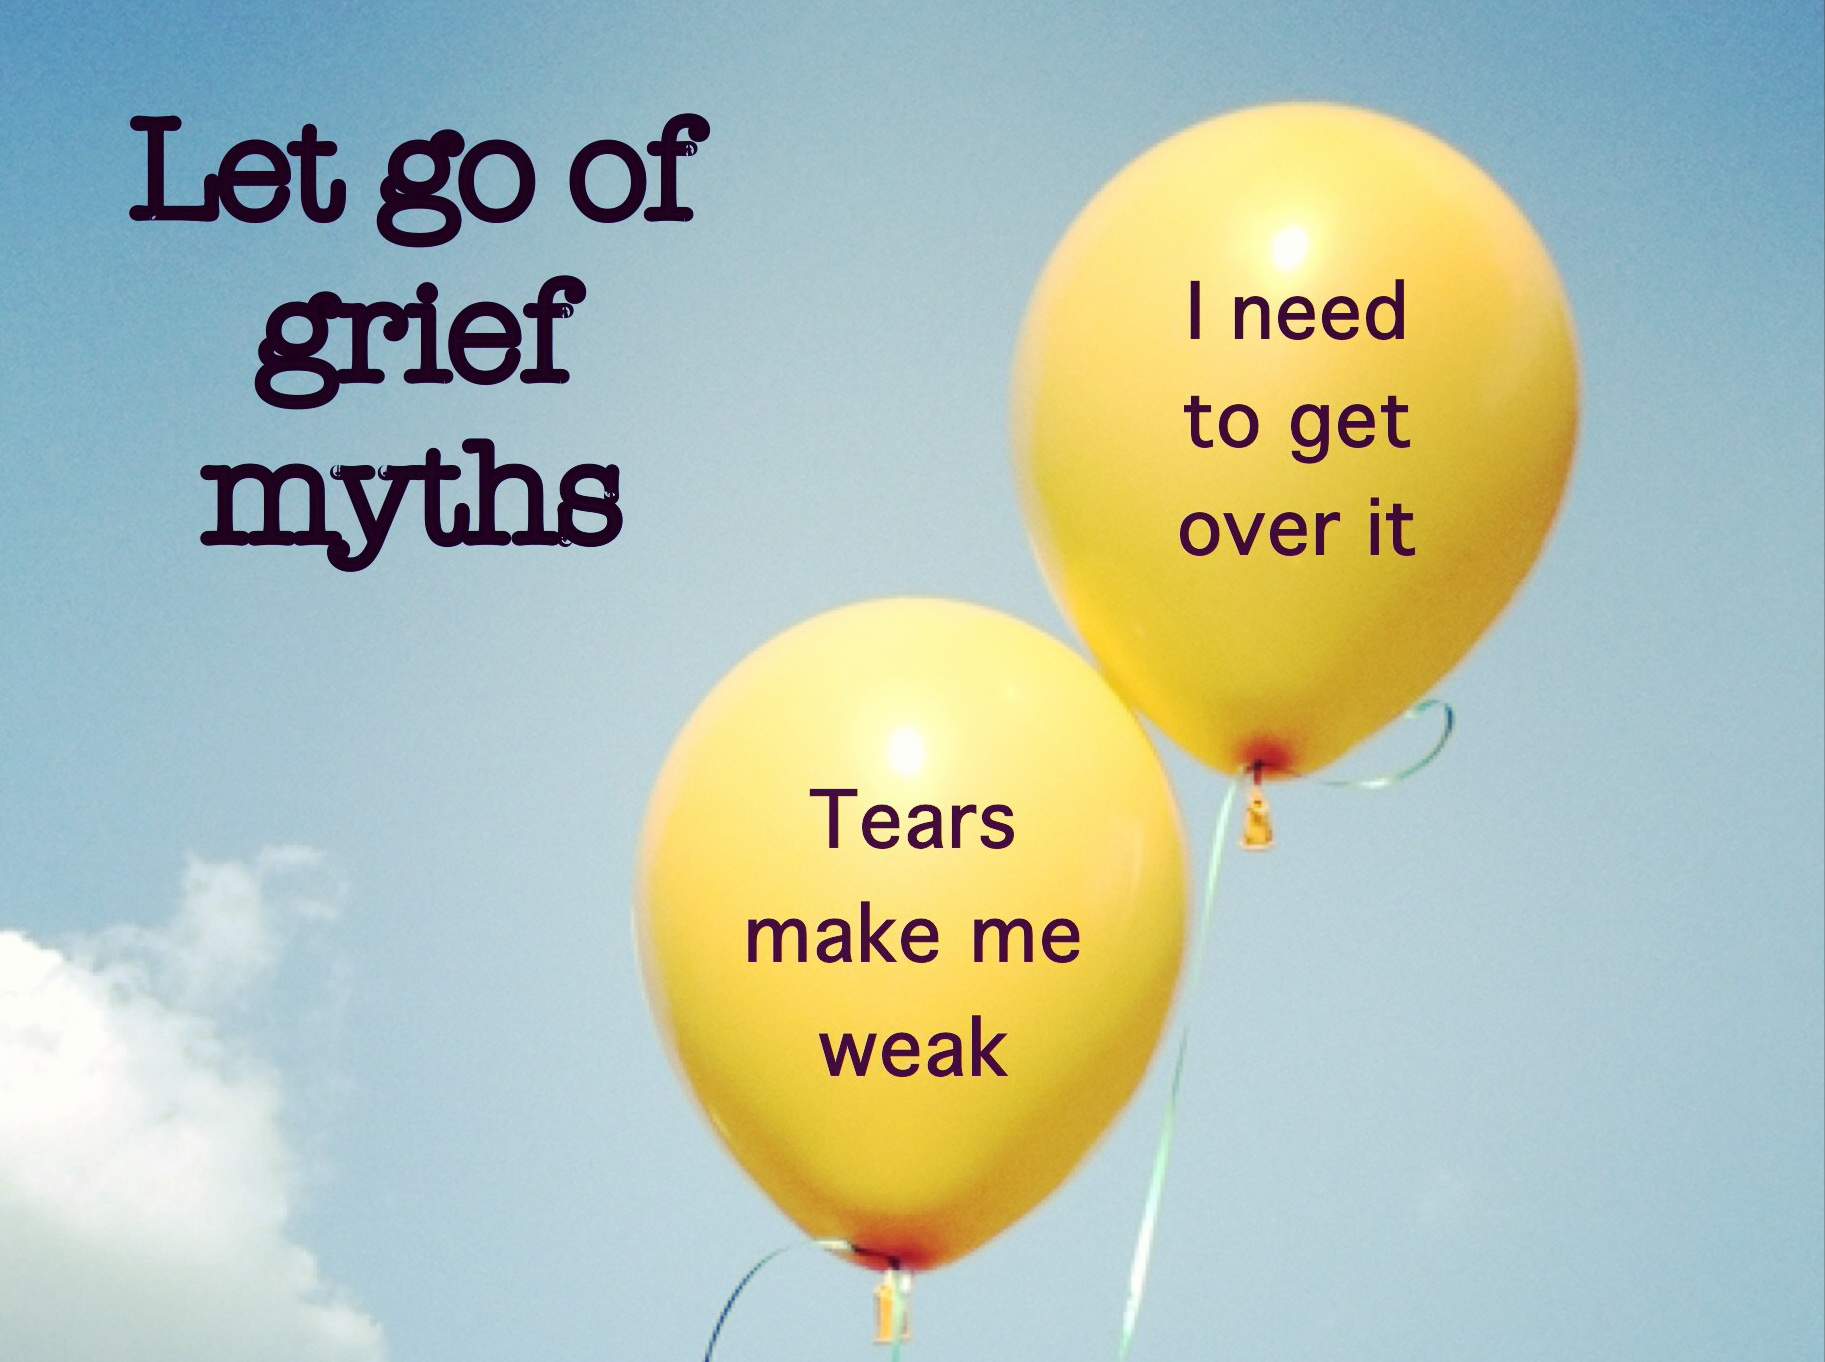 Let go of grief and loss